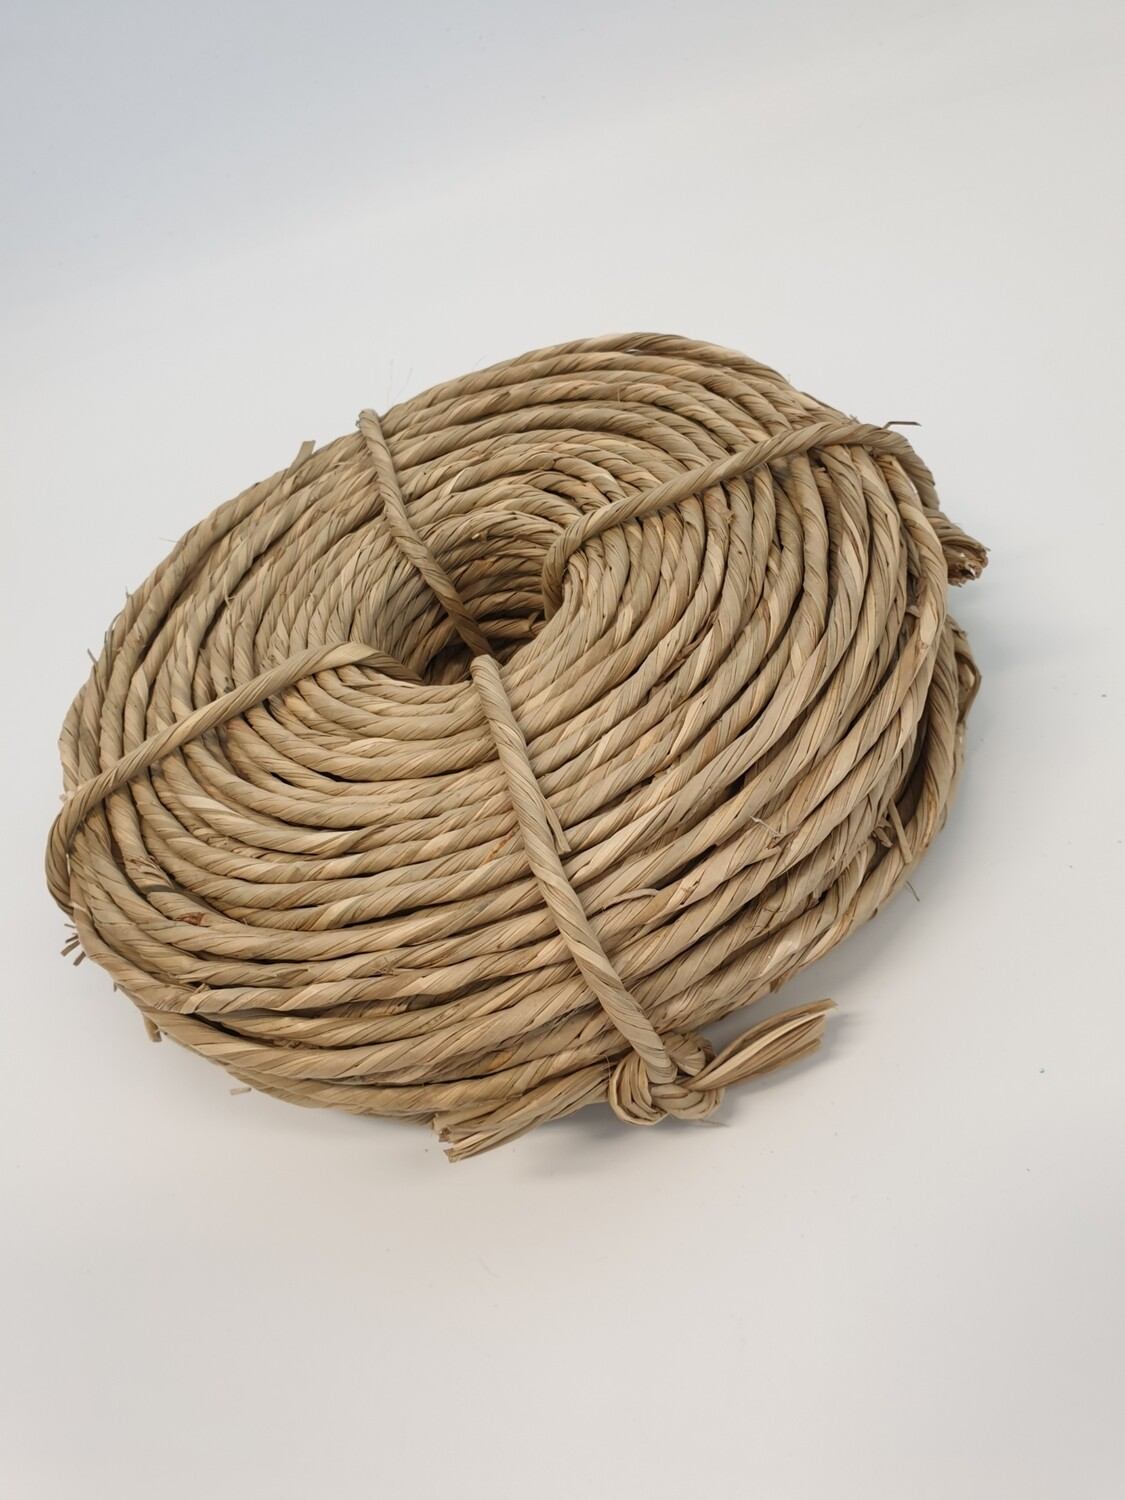 Seagrass cord 1-ply hand twisted 4-5 mm